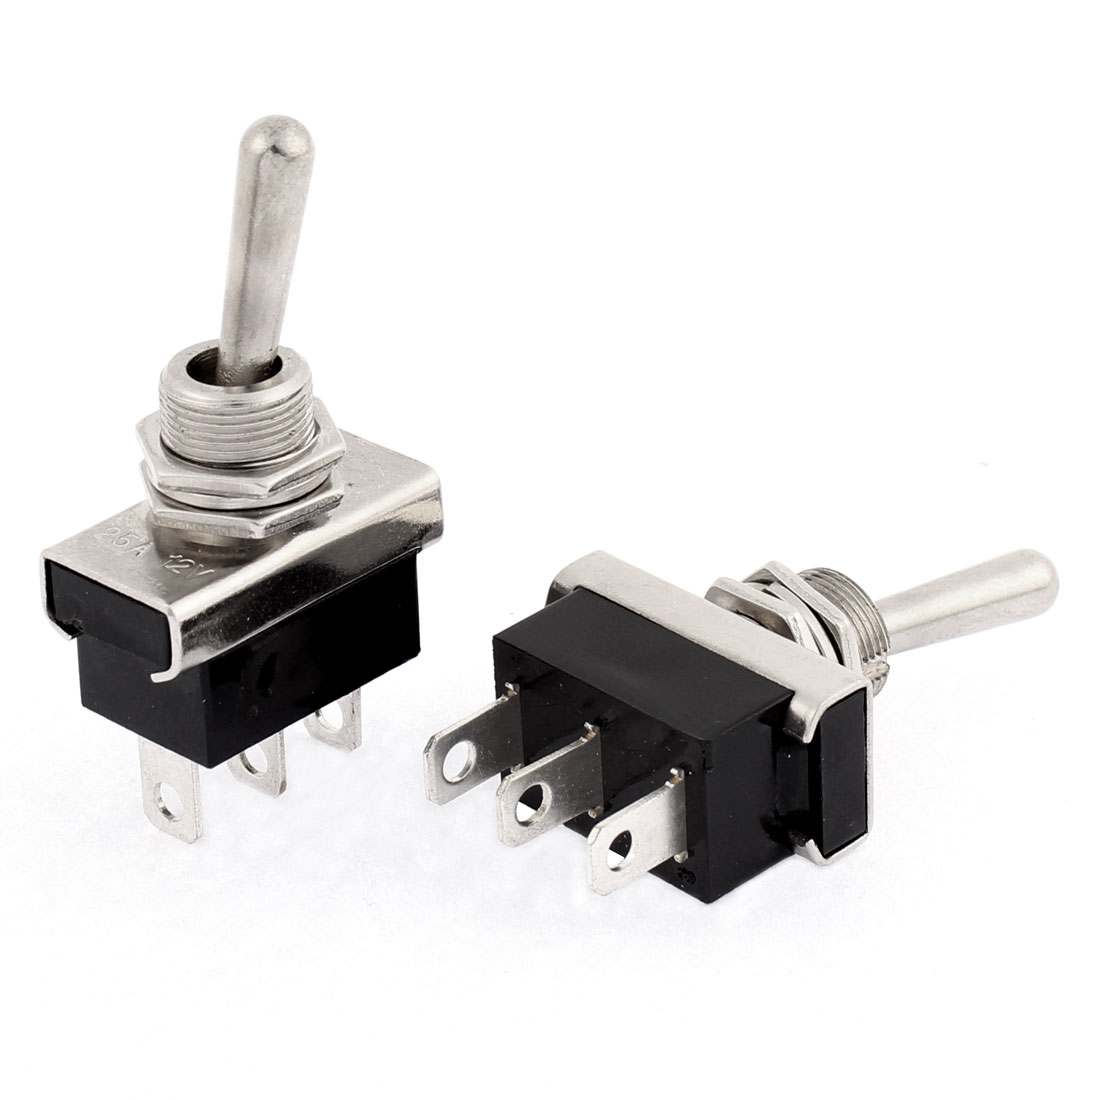 DC 12V 25A Car SUV On/Off/On 3 Position 3 Pin Toggle Switch 2 Pcs